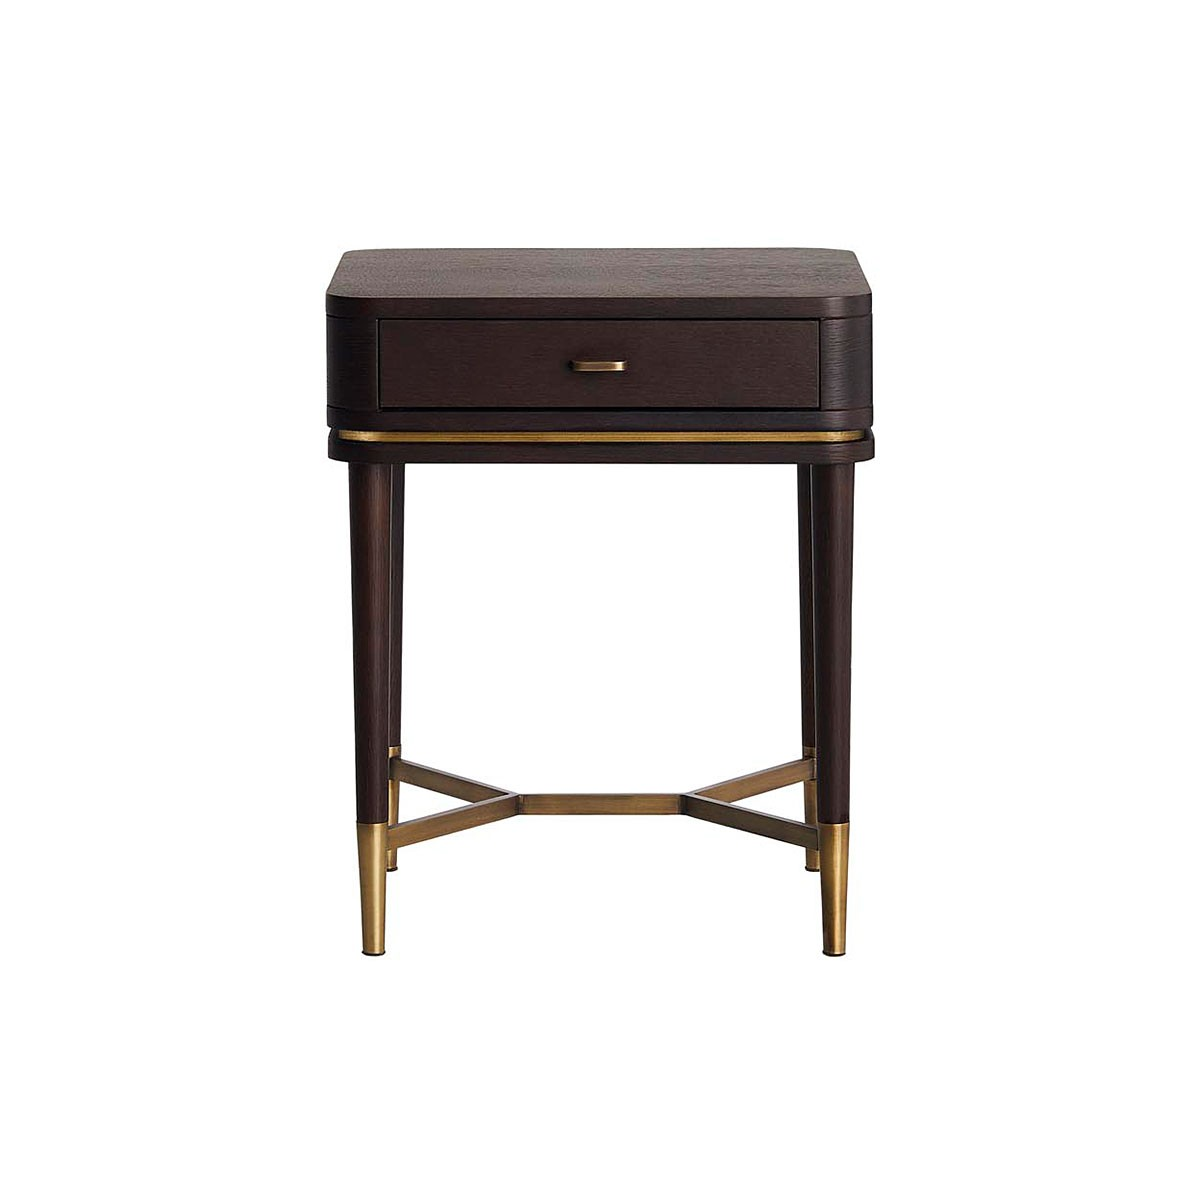 The Augusto Bedside Table